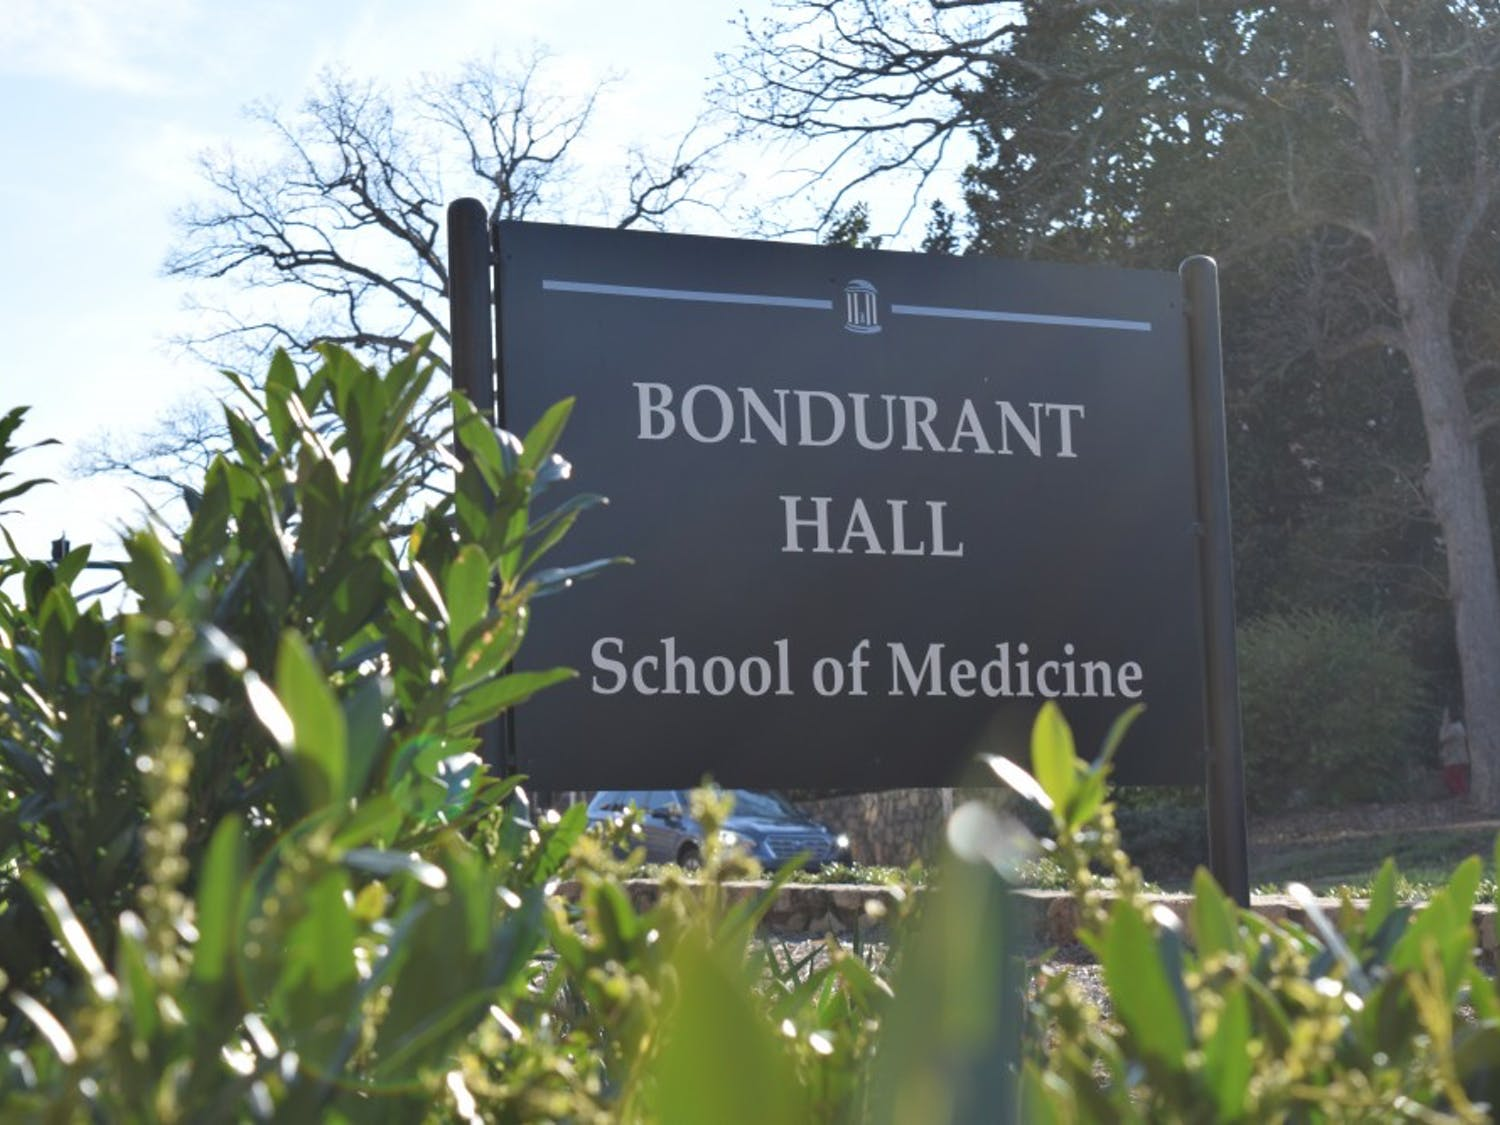 Bondurant Hall is home to UNC's School of Medicine located on South Columbia St.  UNC medical students were matched with their residency programs on Friday, March 15, 2019.